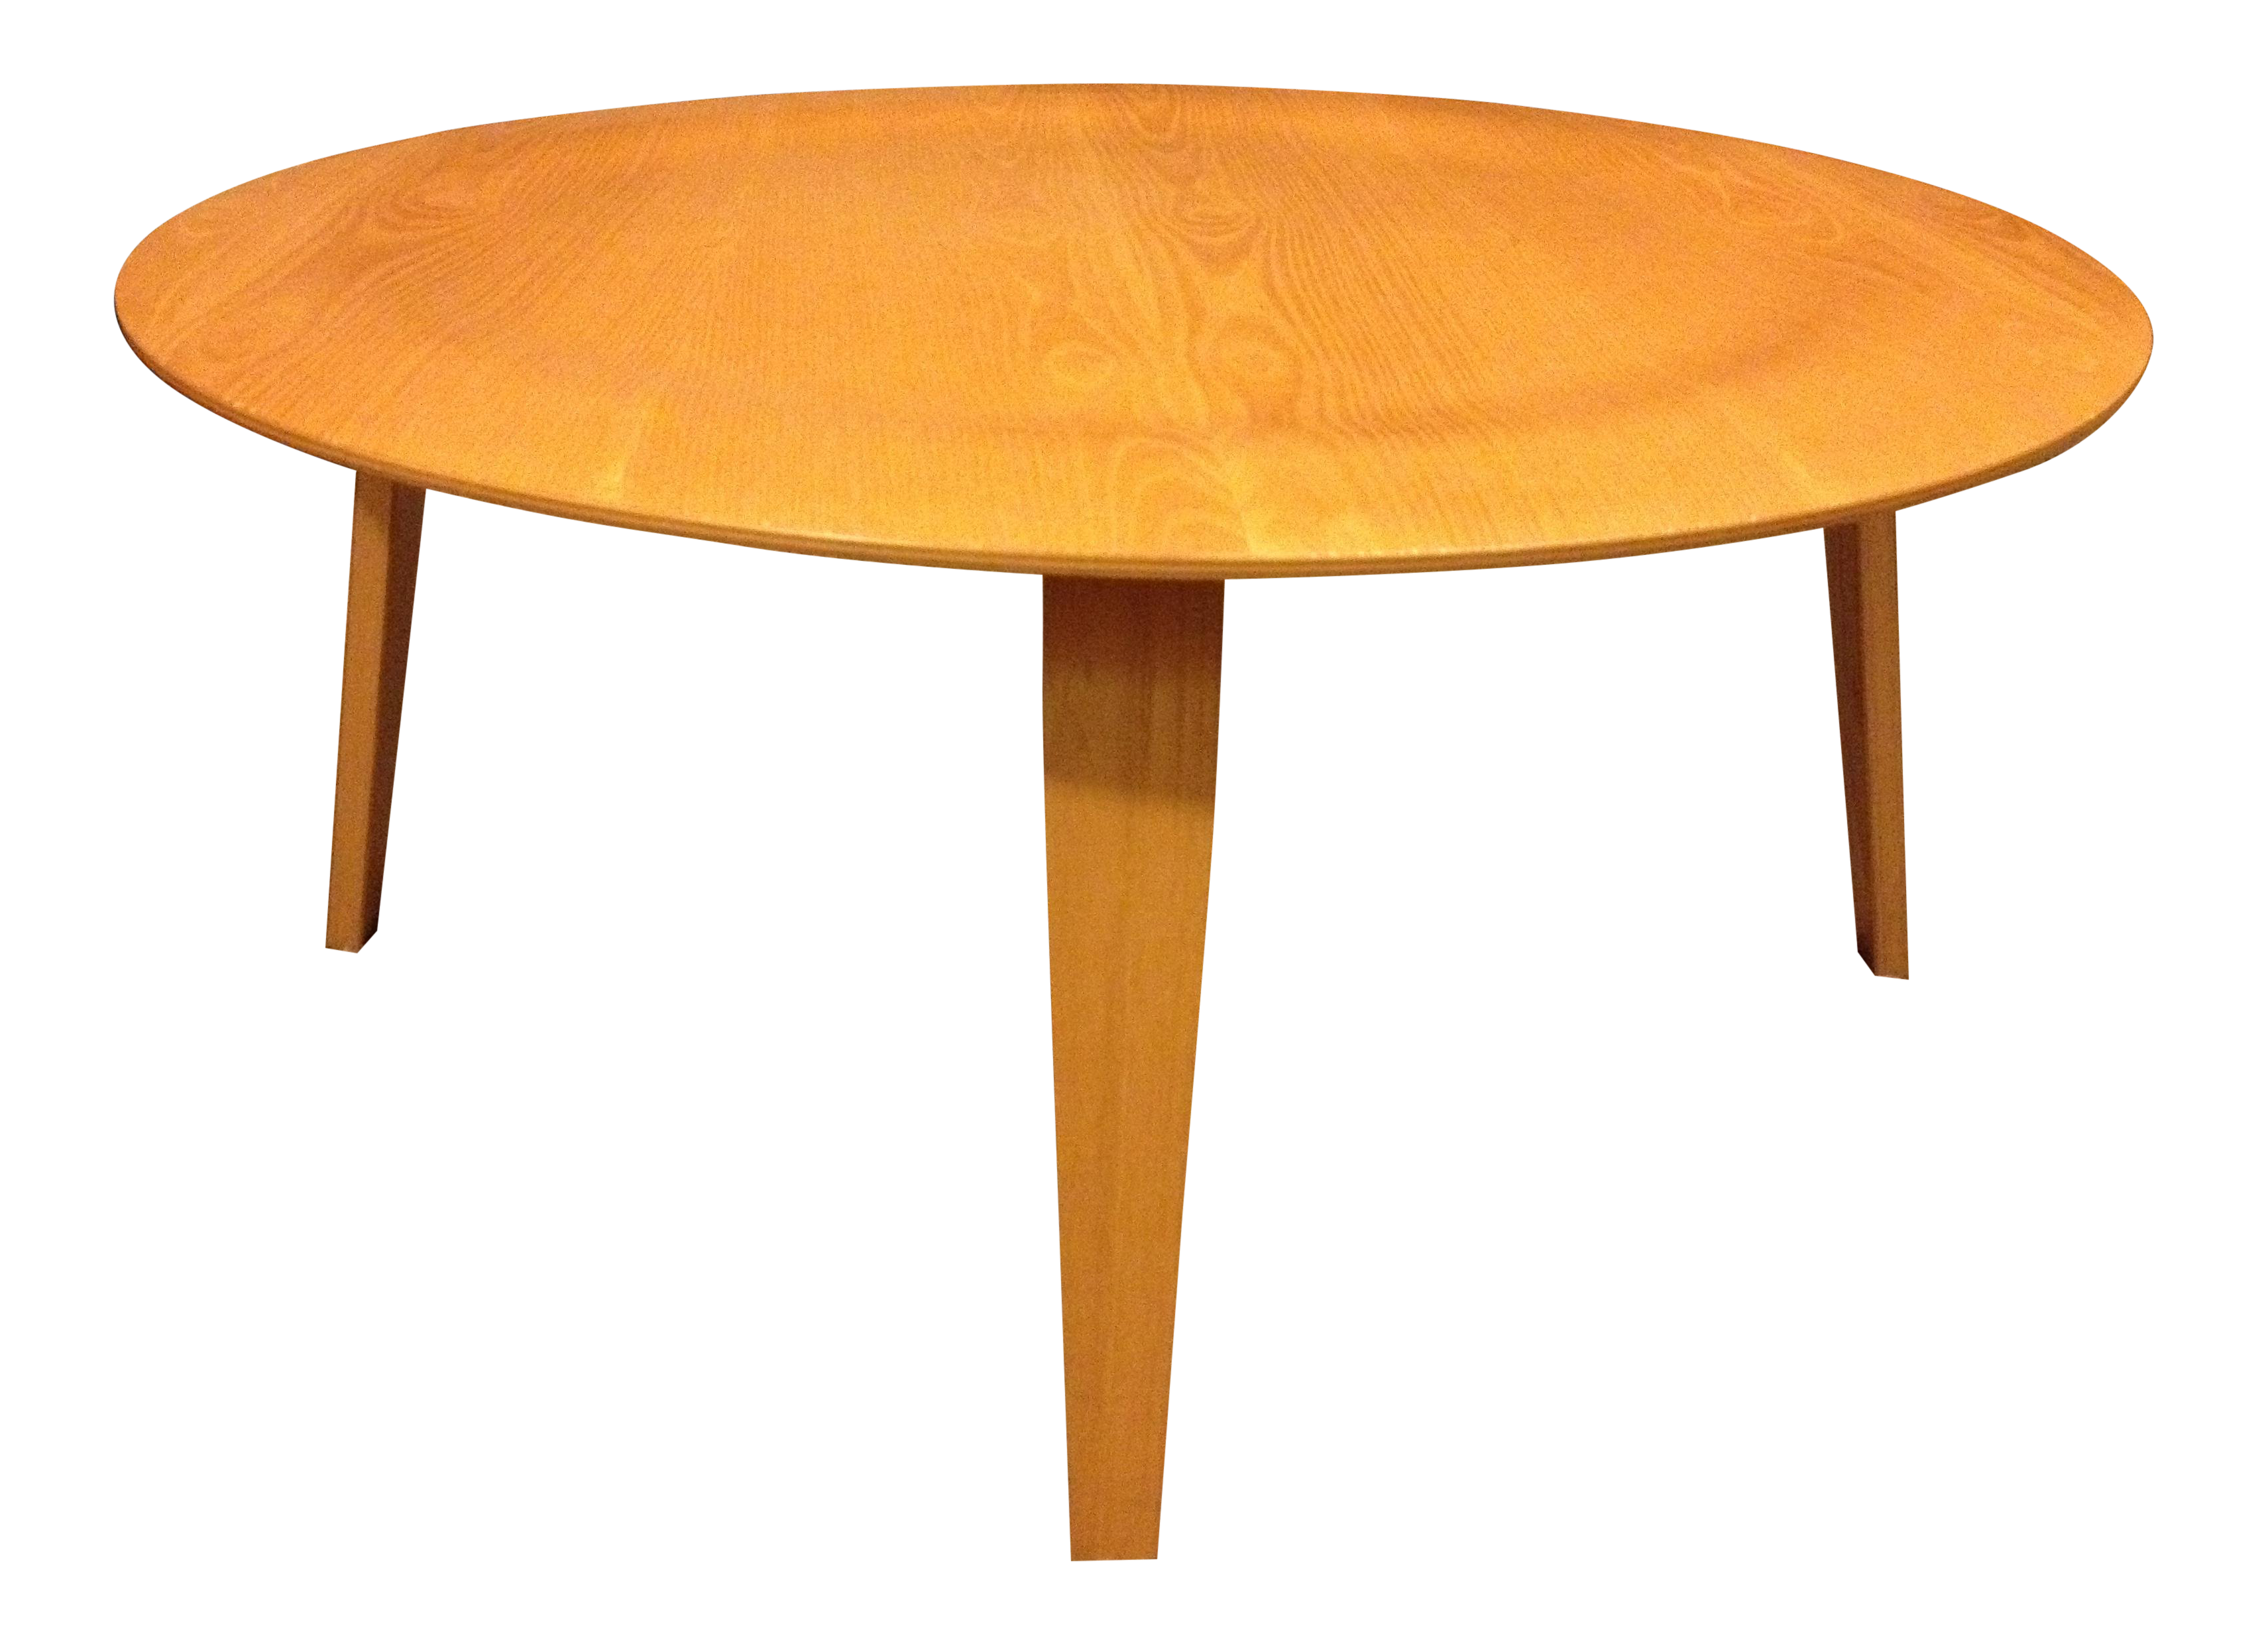 1990s Mid Century Modern Herman Miller Eames Plywood Coffee Table